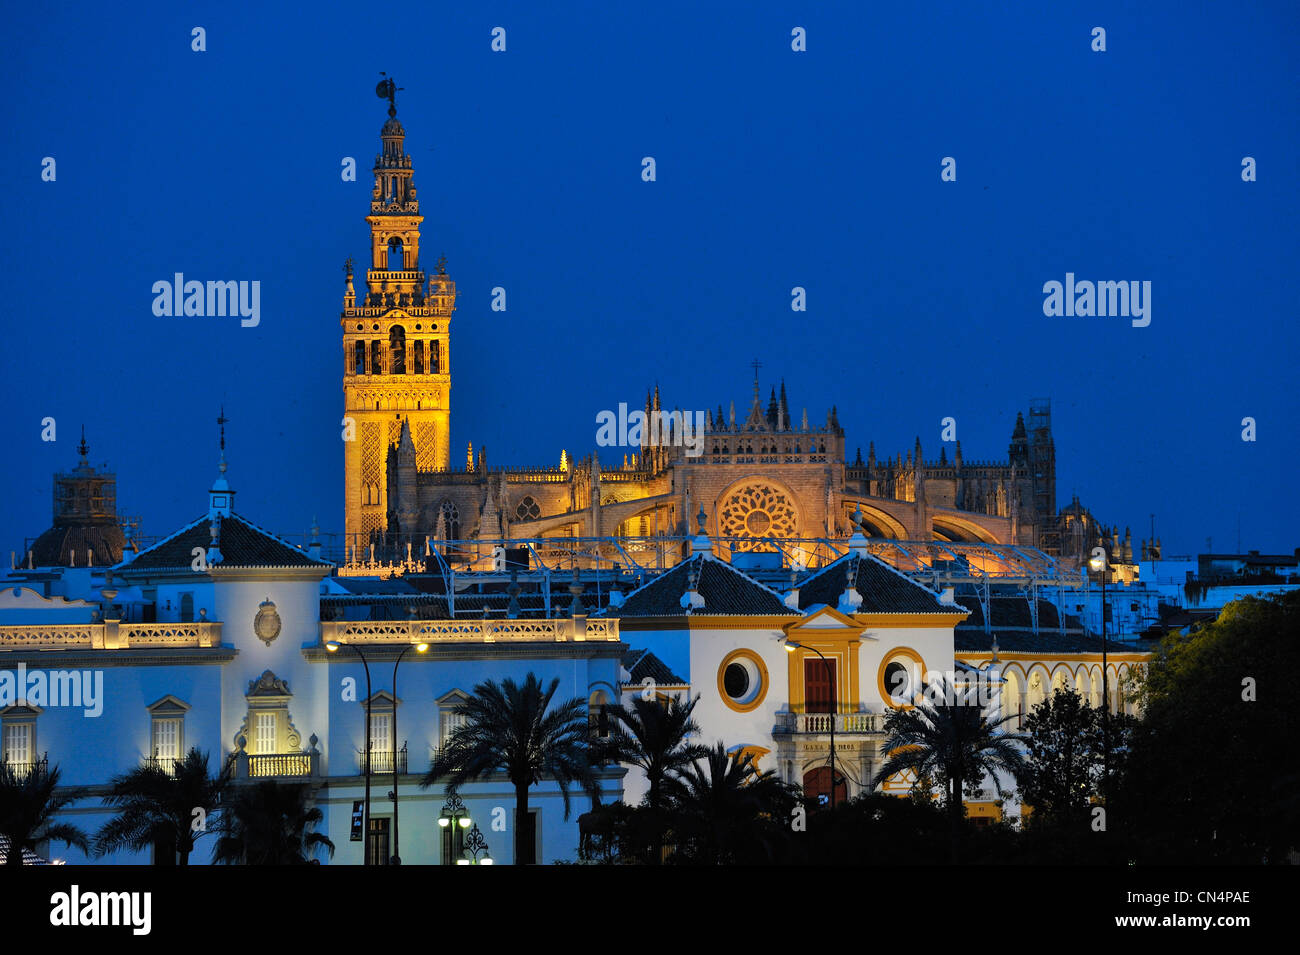 Spain, Andalucia, Seville, La Maestranza at fore (Plaza de toros) and the Cathedral with the Giralta tower at back, - Stock Image